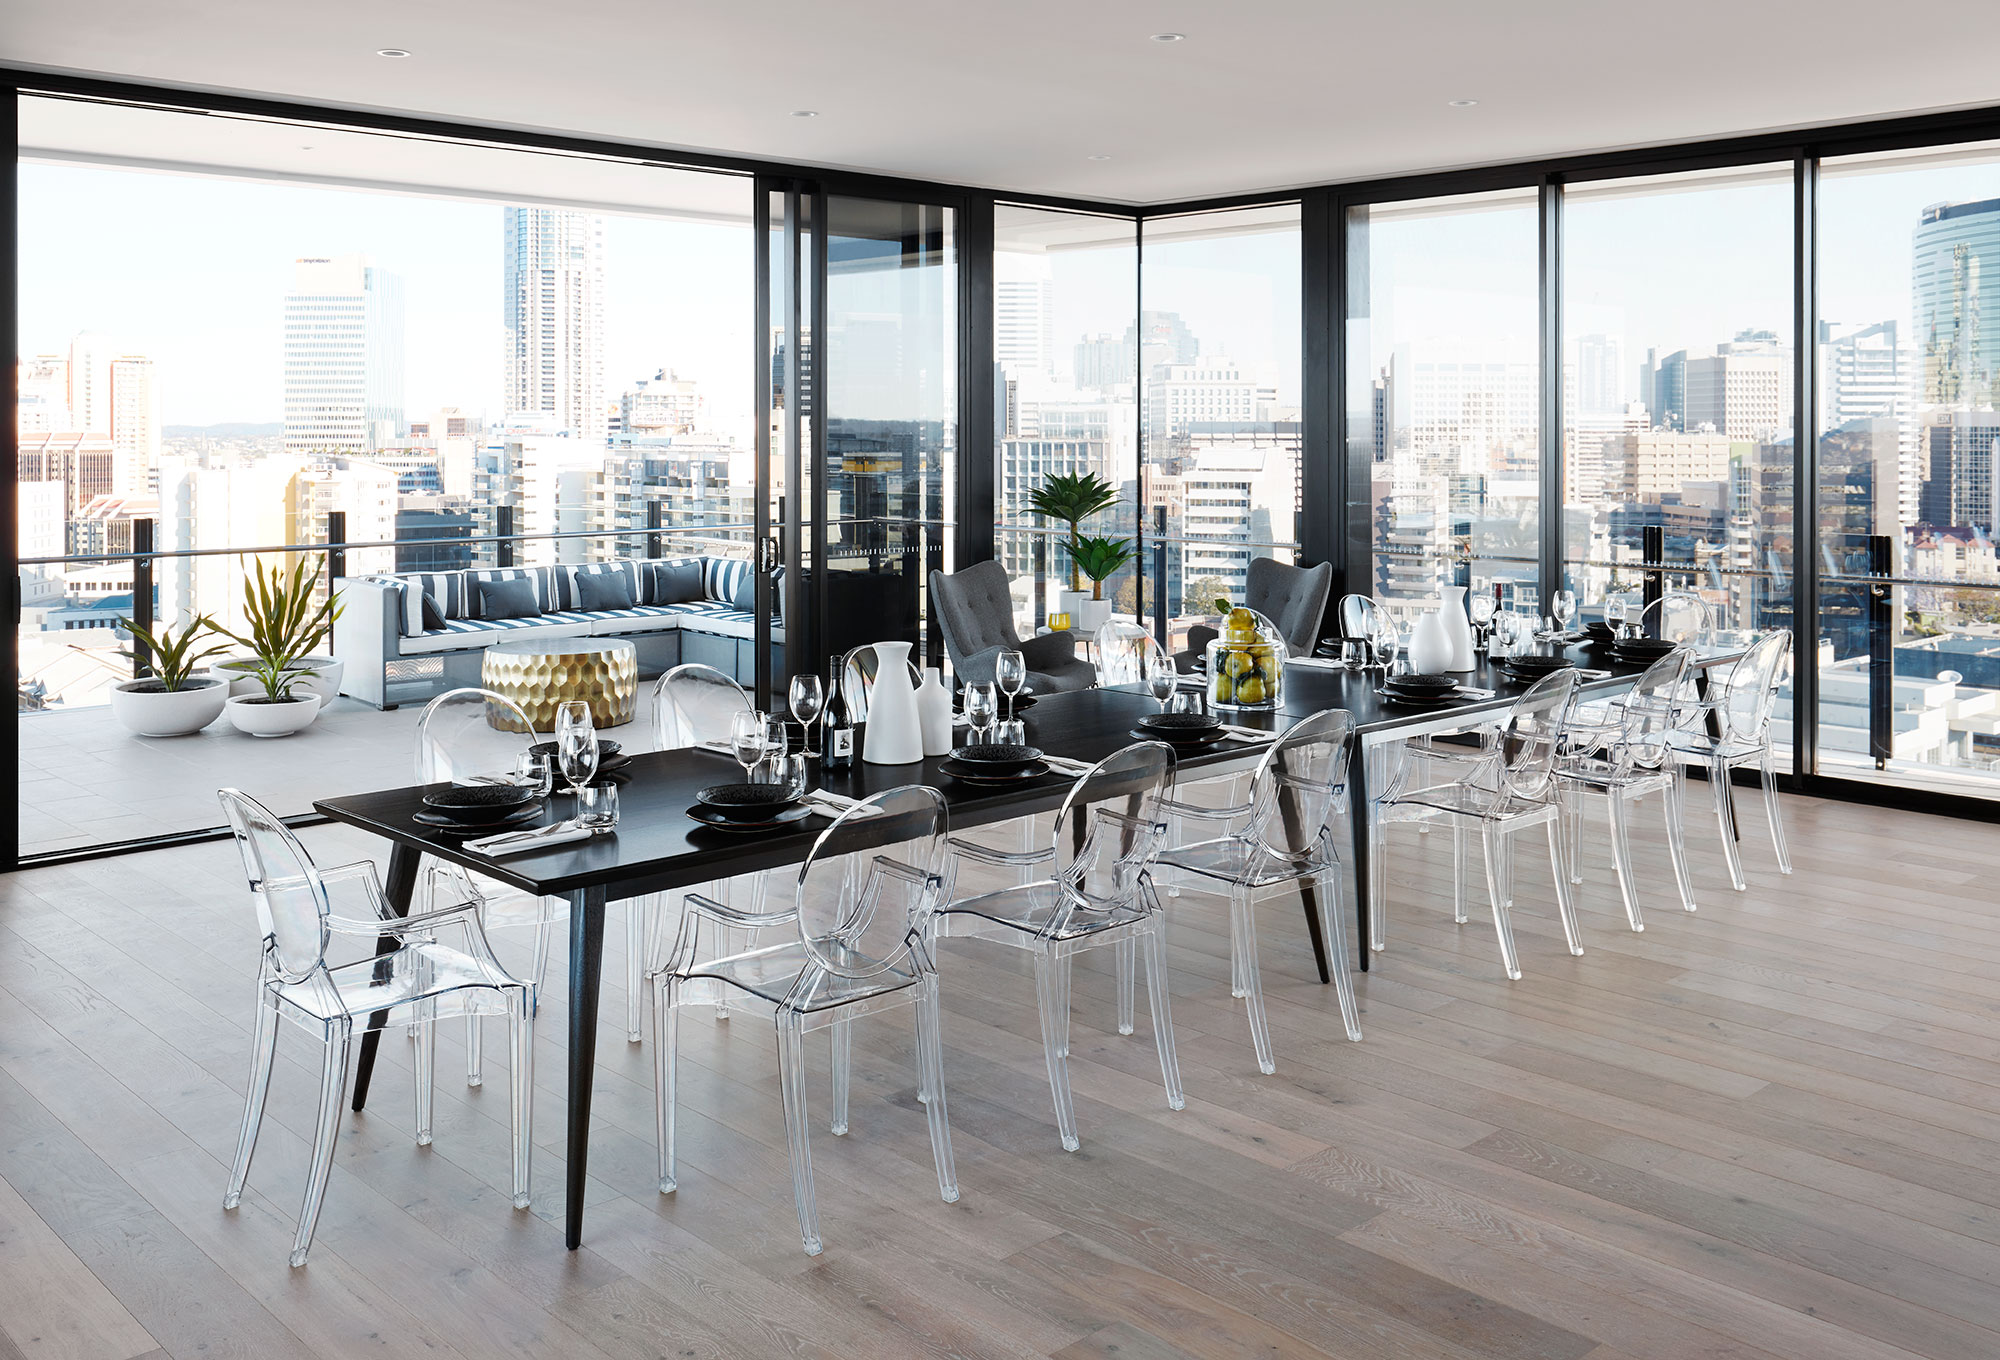 Penthouse dining.